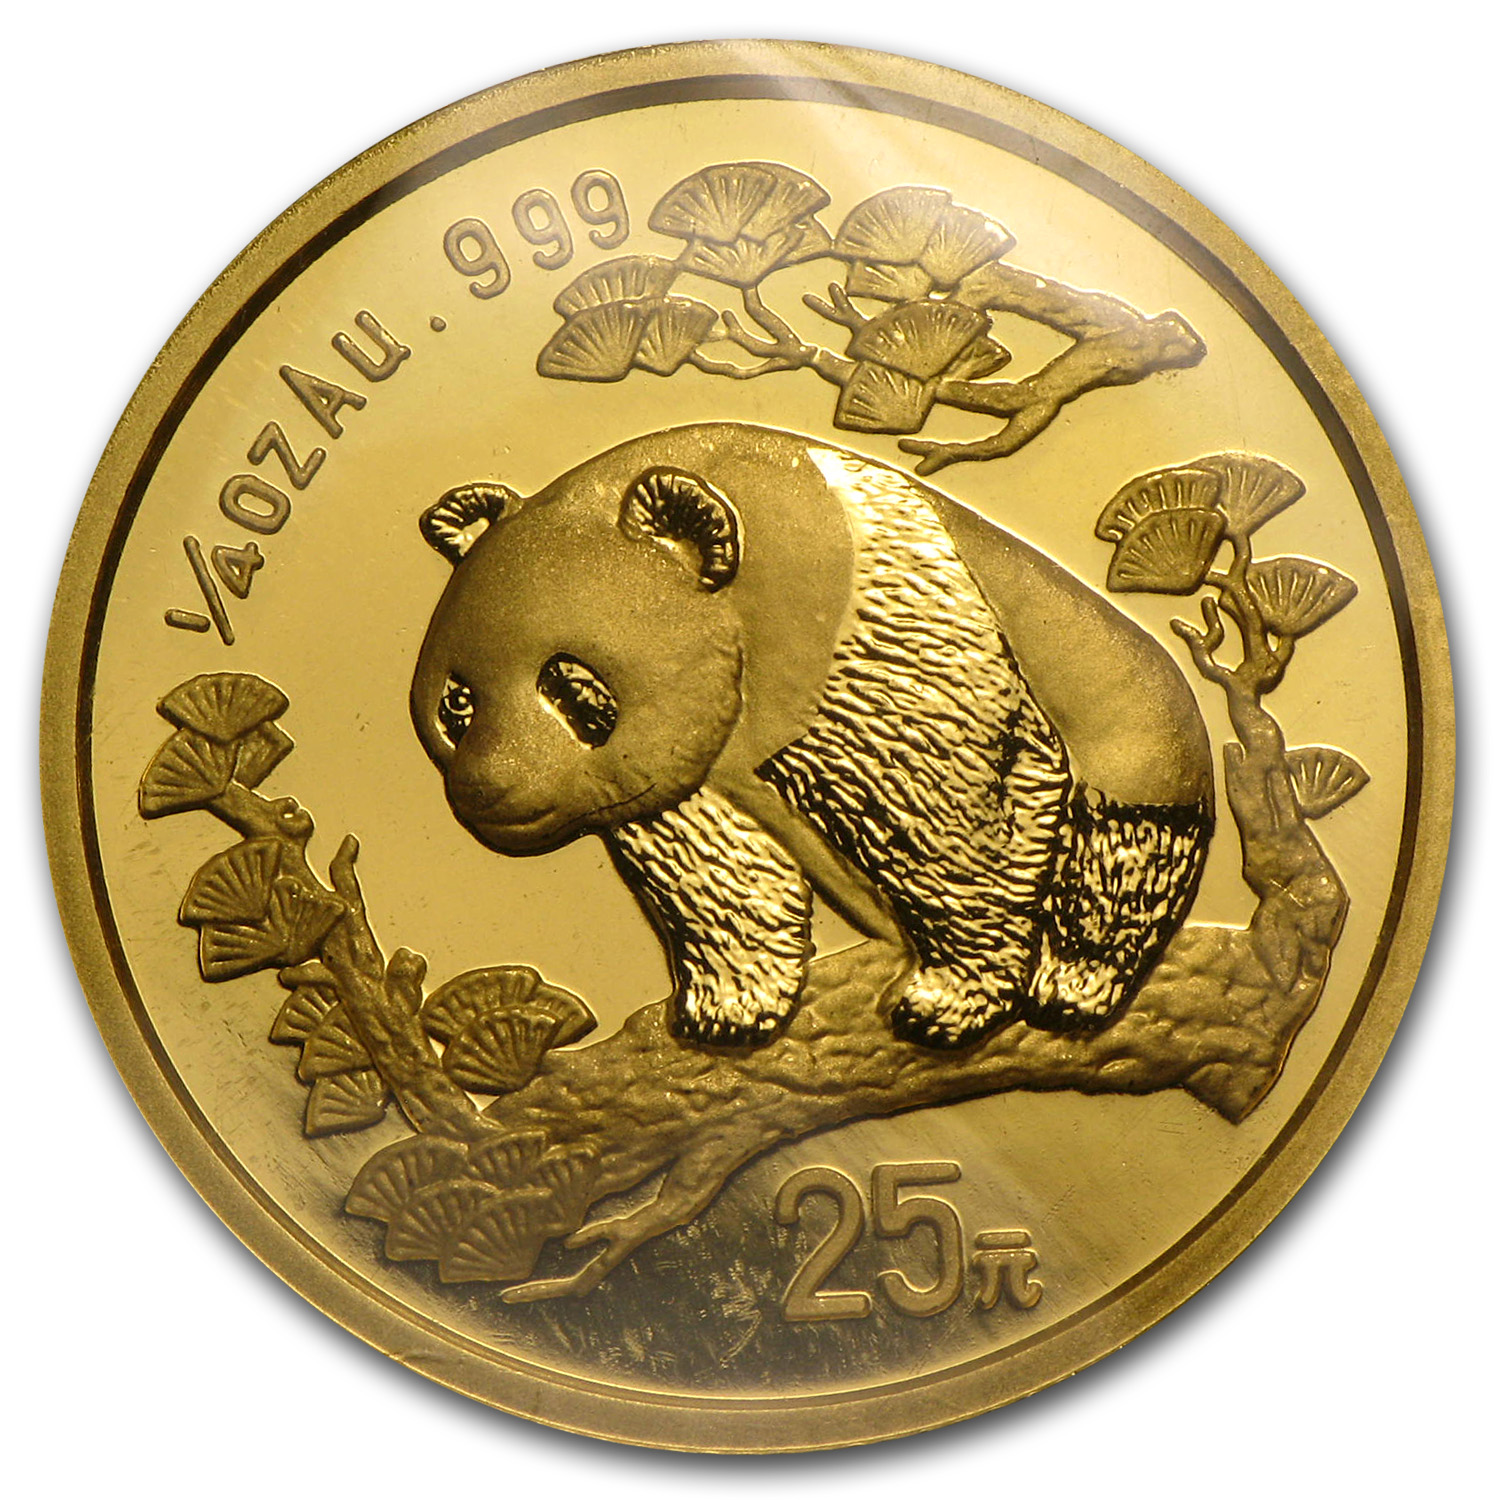 1997 China 1/4 oz Gold Panda Large Date BU (Sealed)